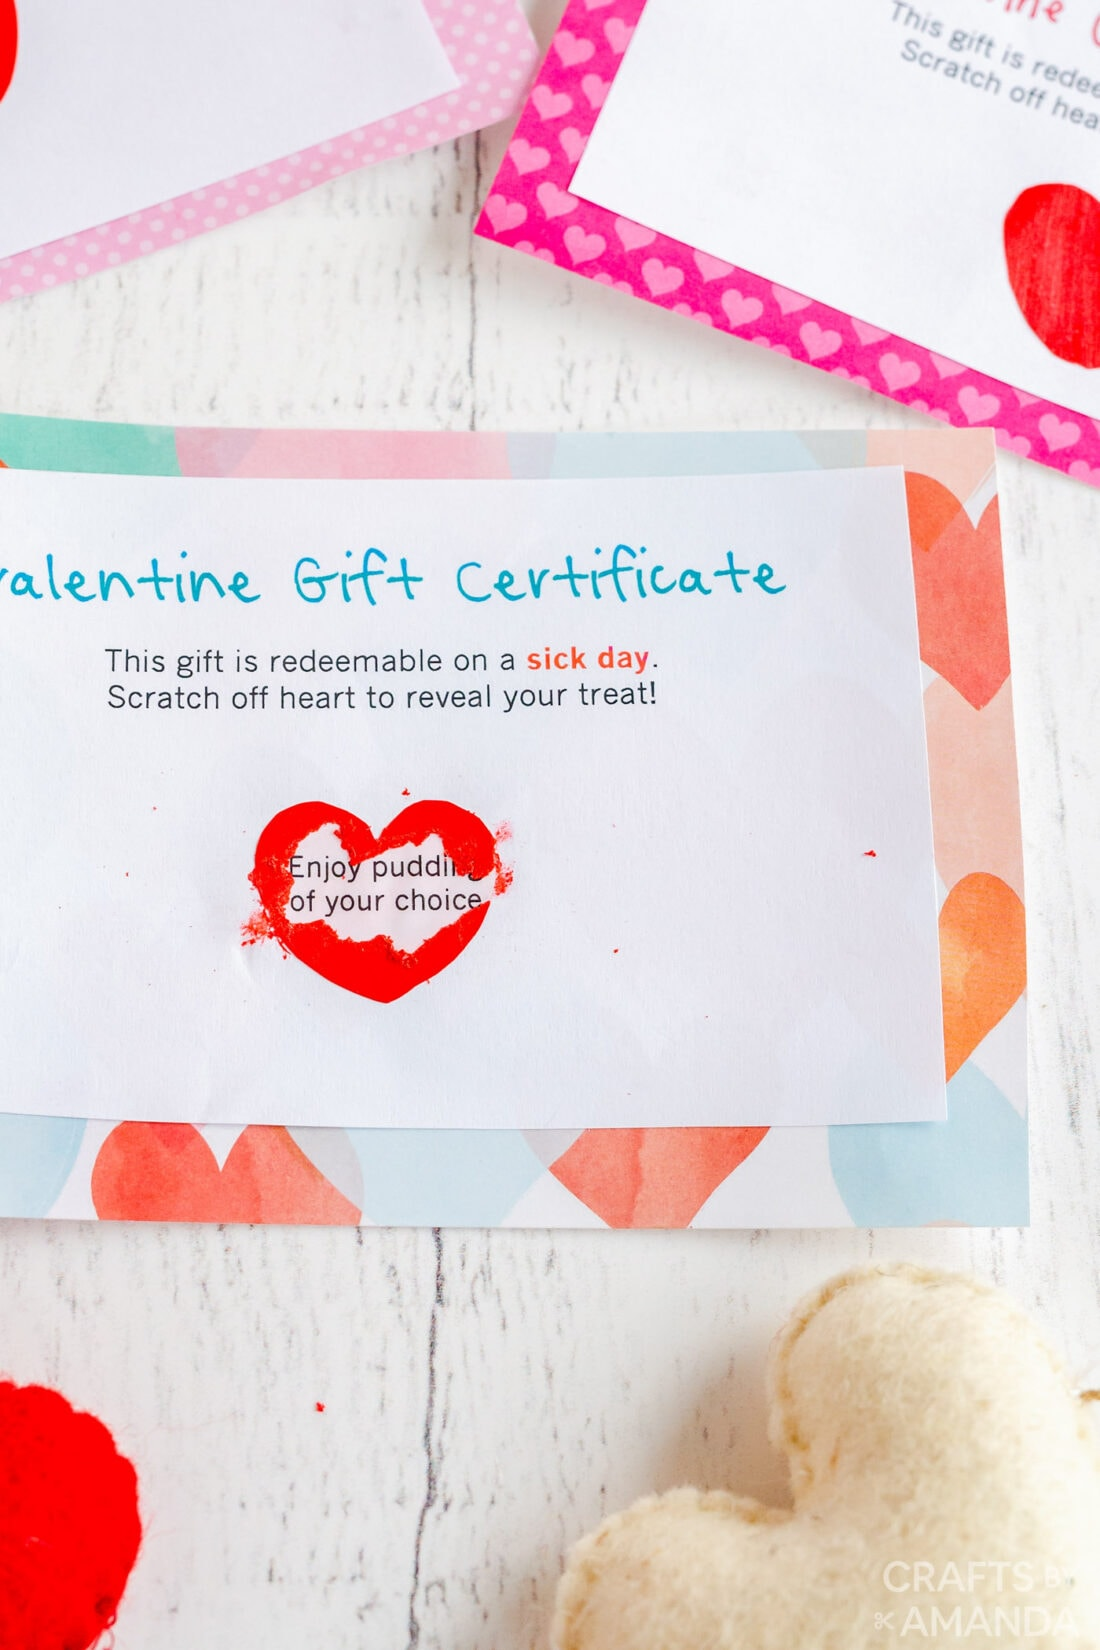 heart scratched off to reveal prize